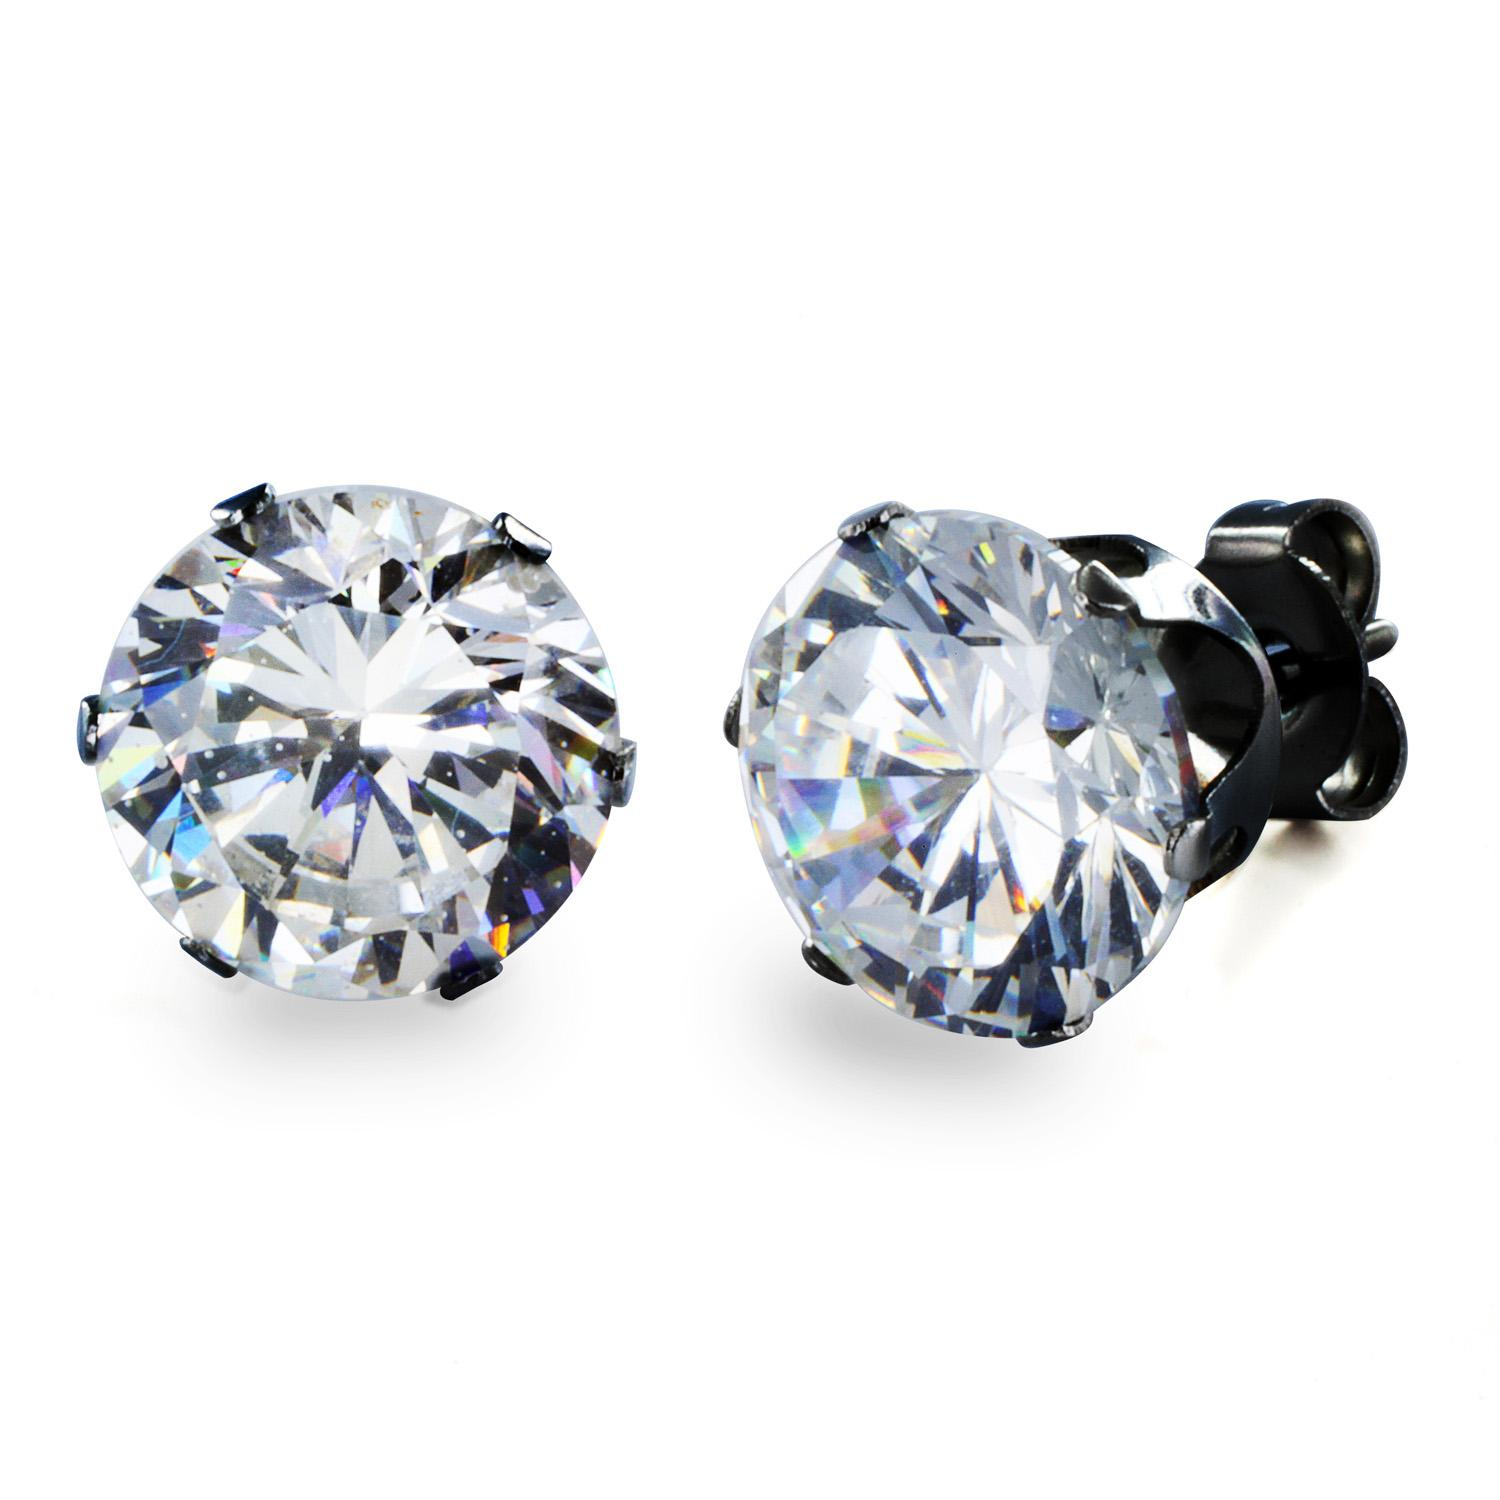 Black Plated Stainless Steel Stud Earrings with Round Clear CZ - 9 mm